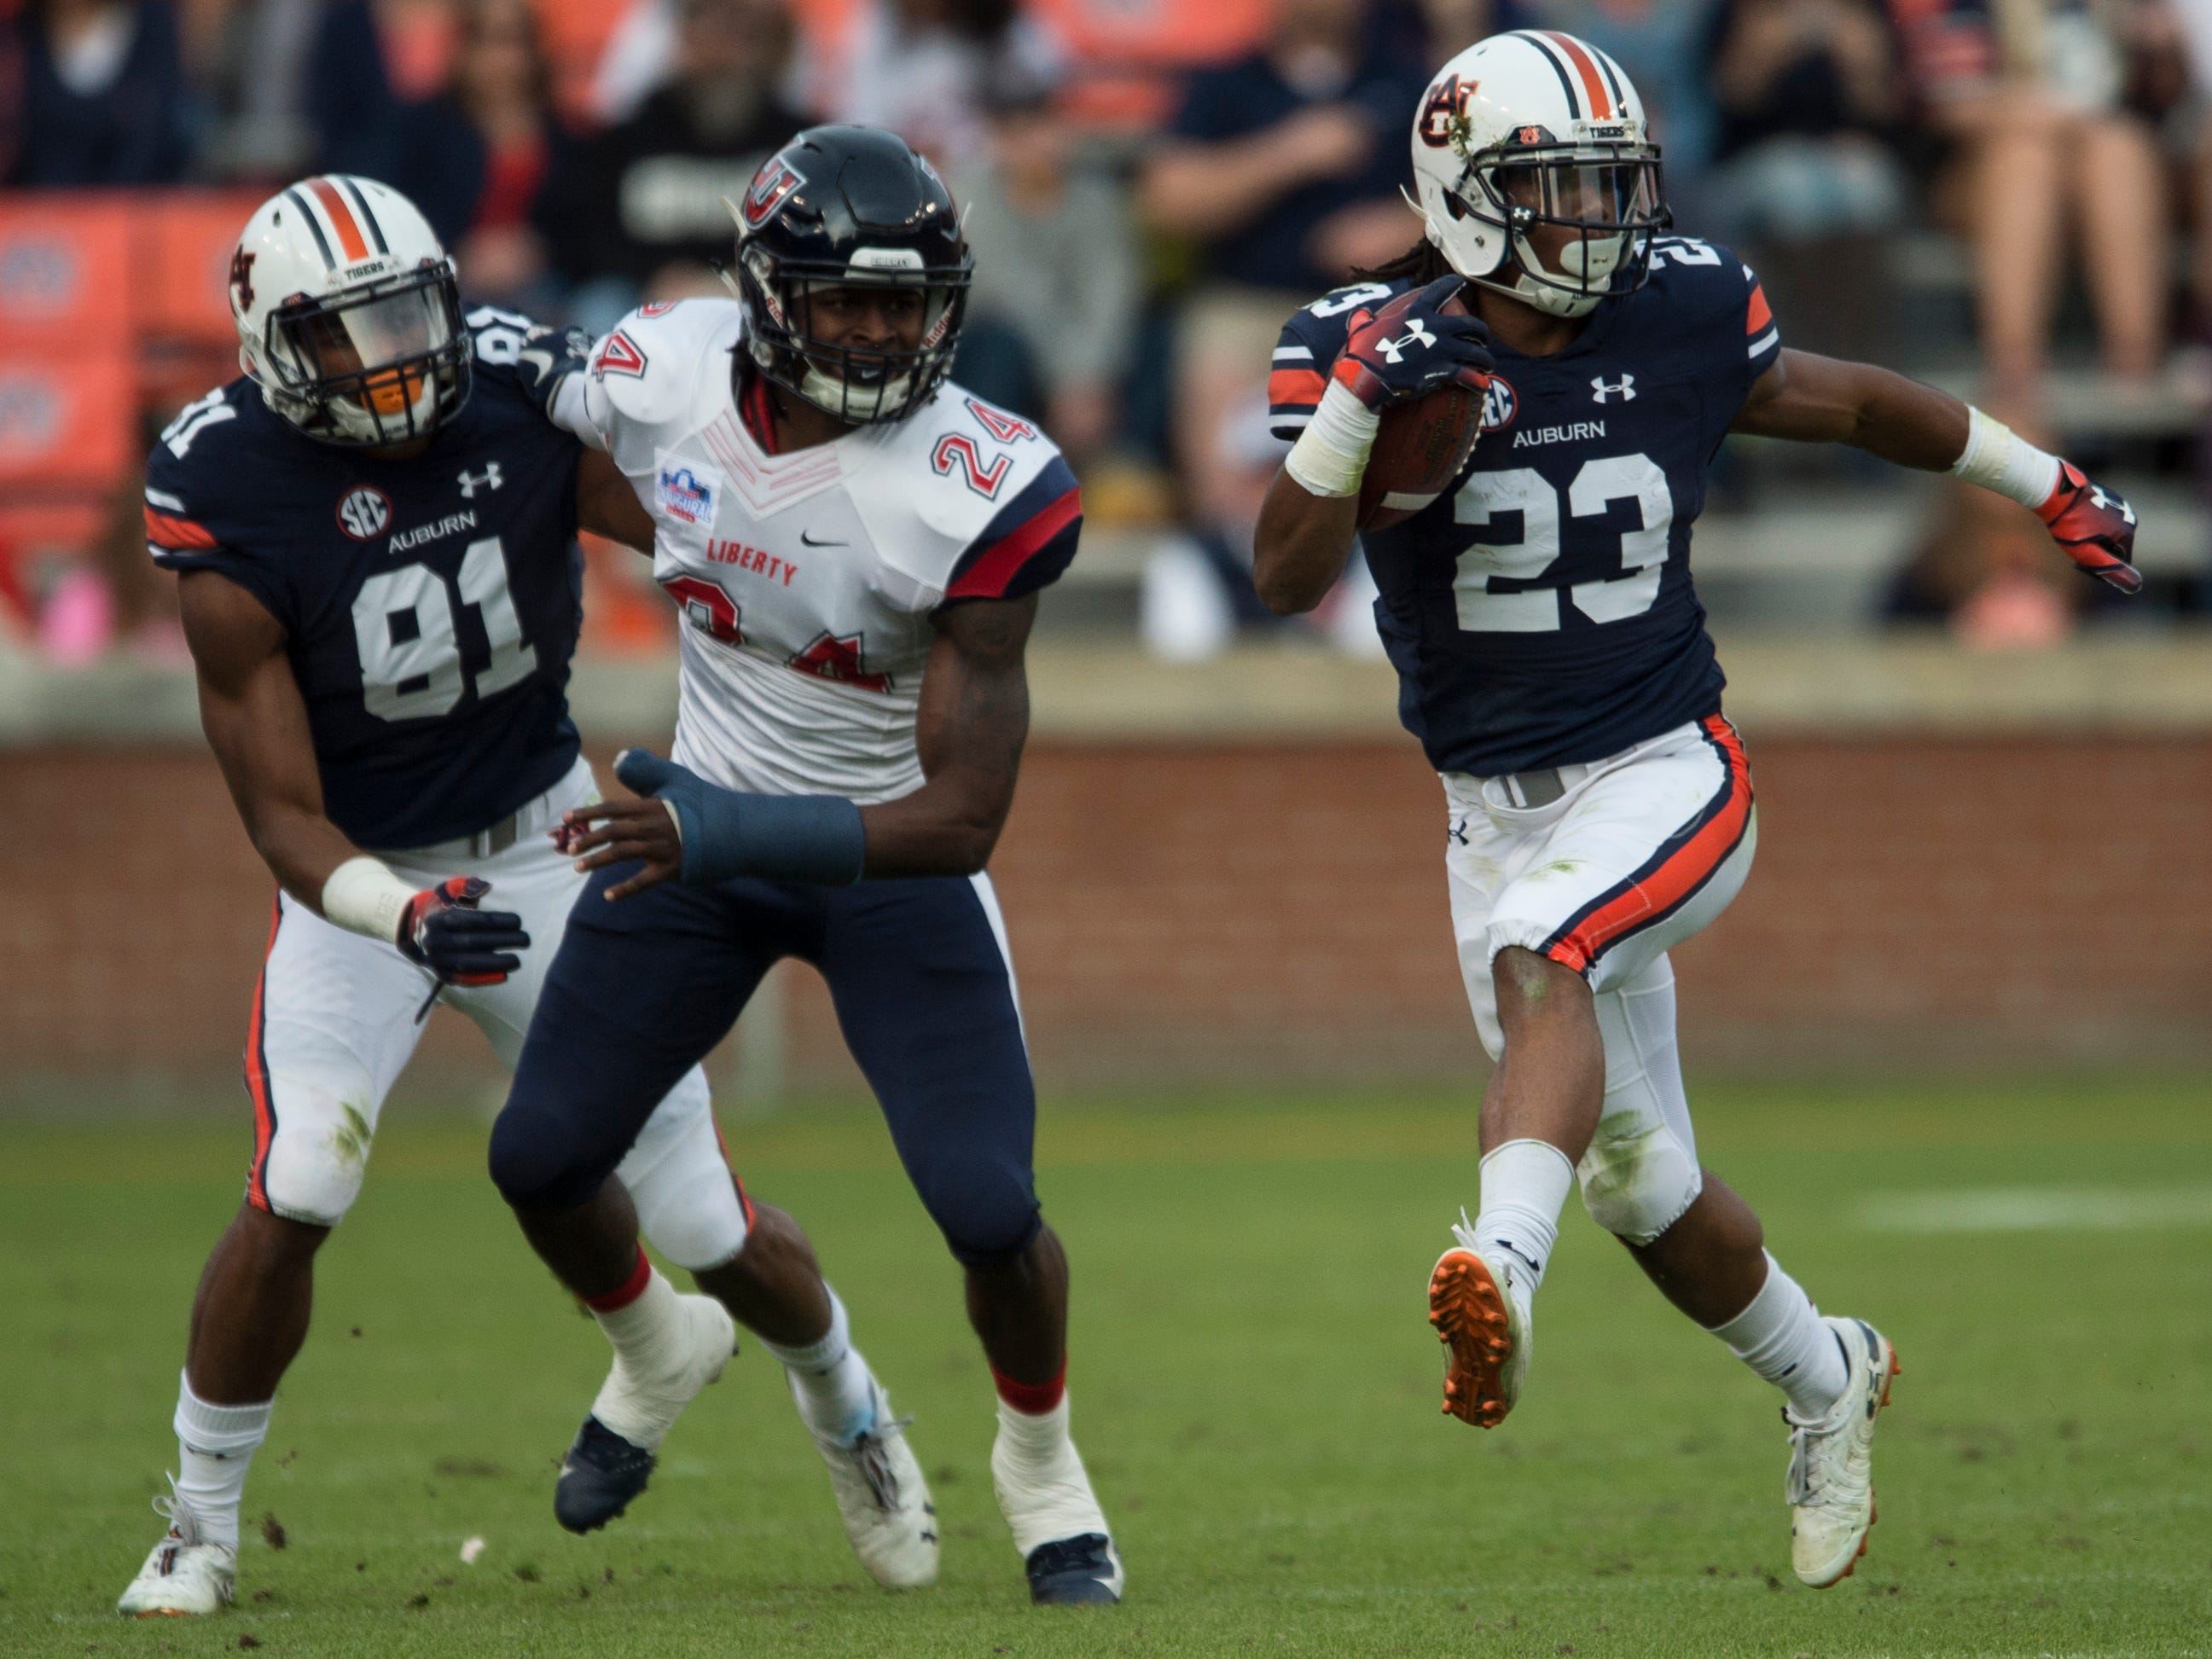 Auburn wide receiver Ryan Davis (23) runs the ball against Liberty at Jordan-Hare Stadium in Auburn, Ala., on Saturday, Nov.. 17, 2018. Auburn defeated Liberty 53-0.